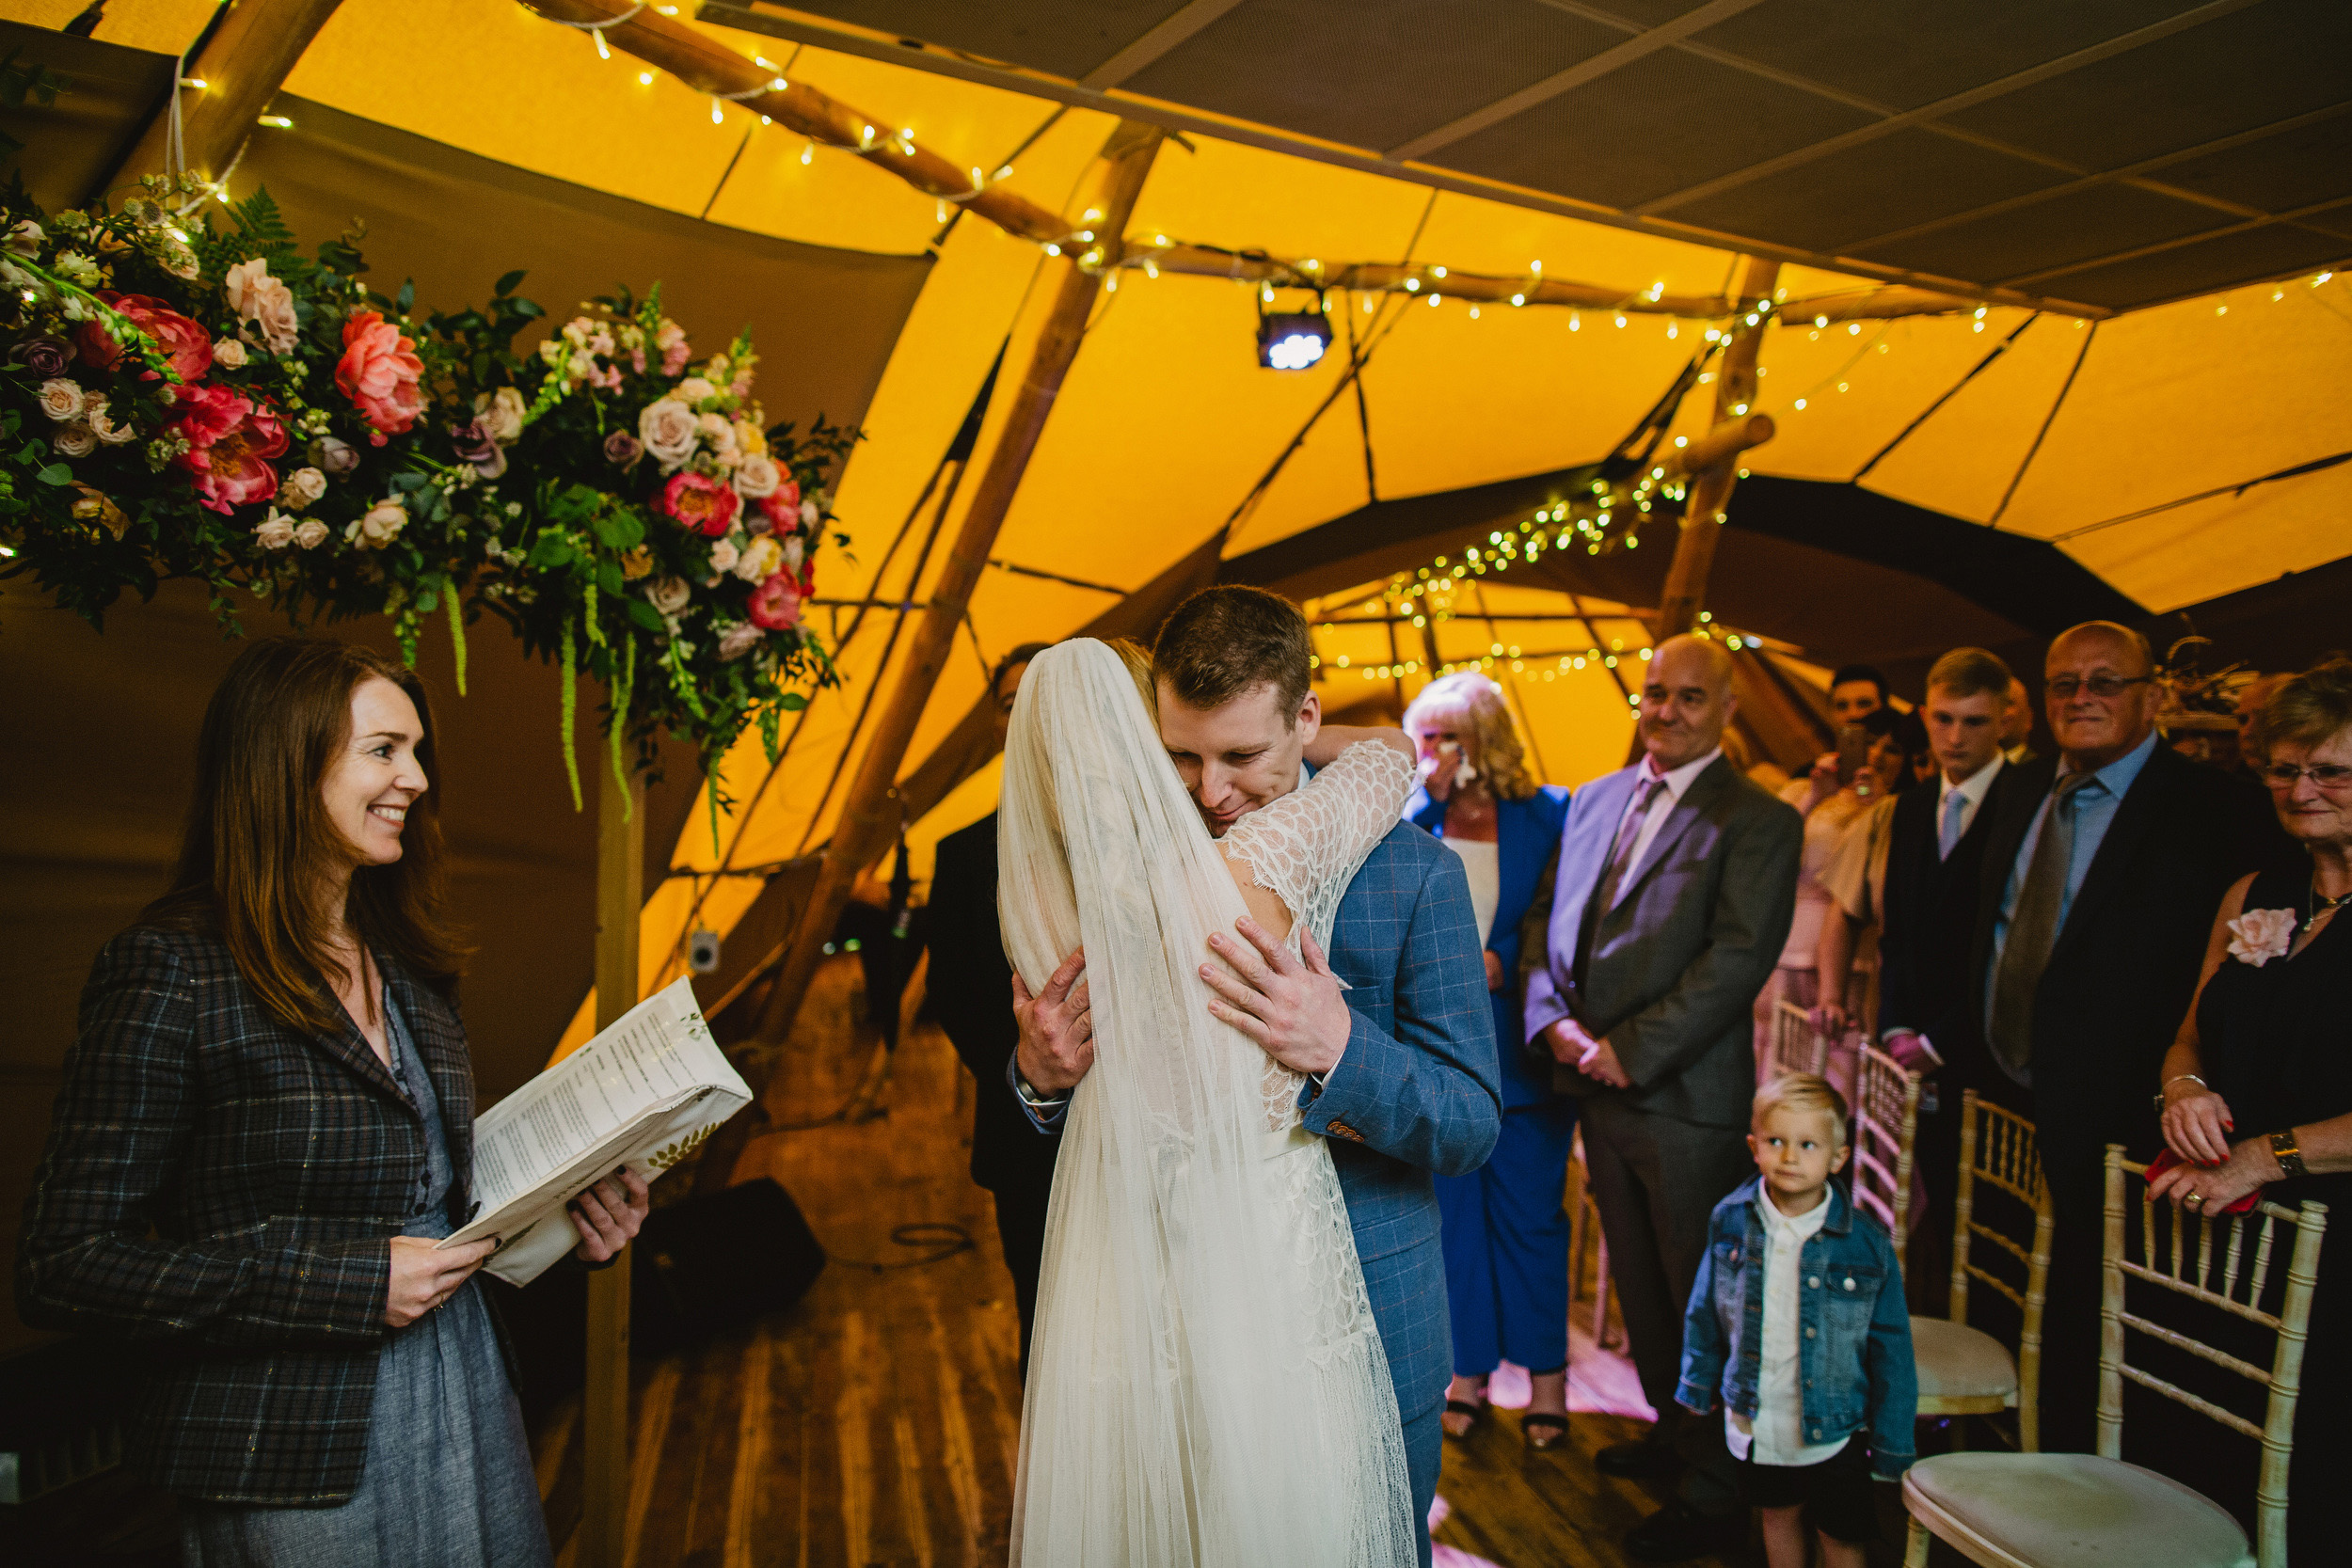 Gemma-Bohemian-Outdoor-Tipi-Wedding-Laid-Back-Relaxed-Family-Wedding-Kate-Beaumont-Astilbe-by-S6-Photography-Sheffield-7.jpg